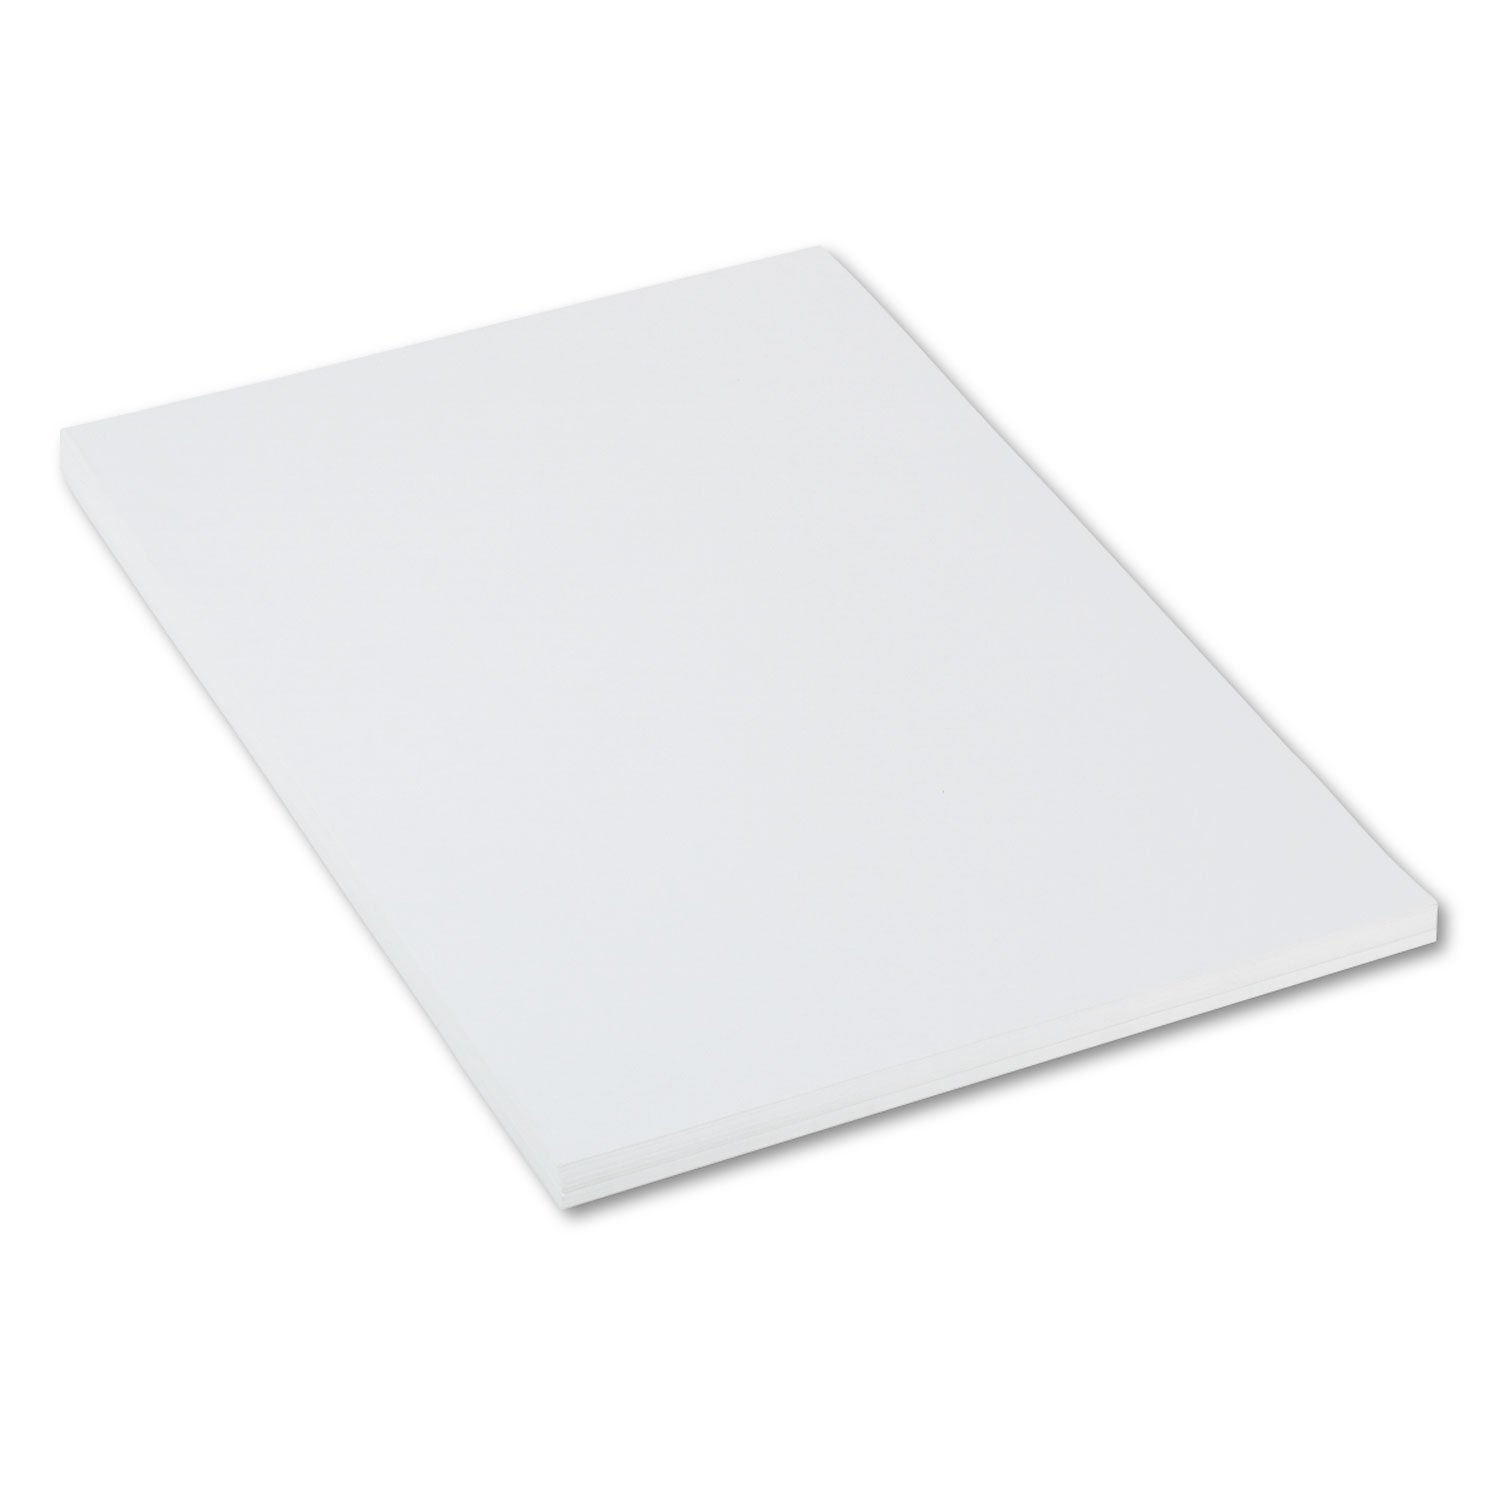 Pacon Heavyweight Tagboard, 24 x 36 Inches, White, 100 Sheets (5226)